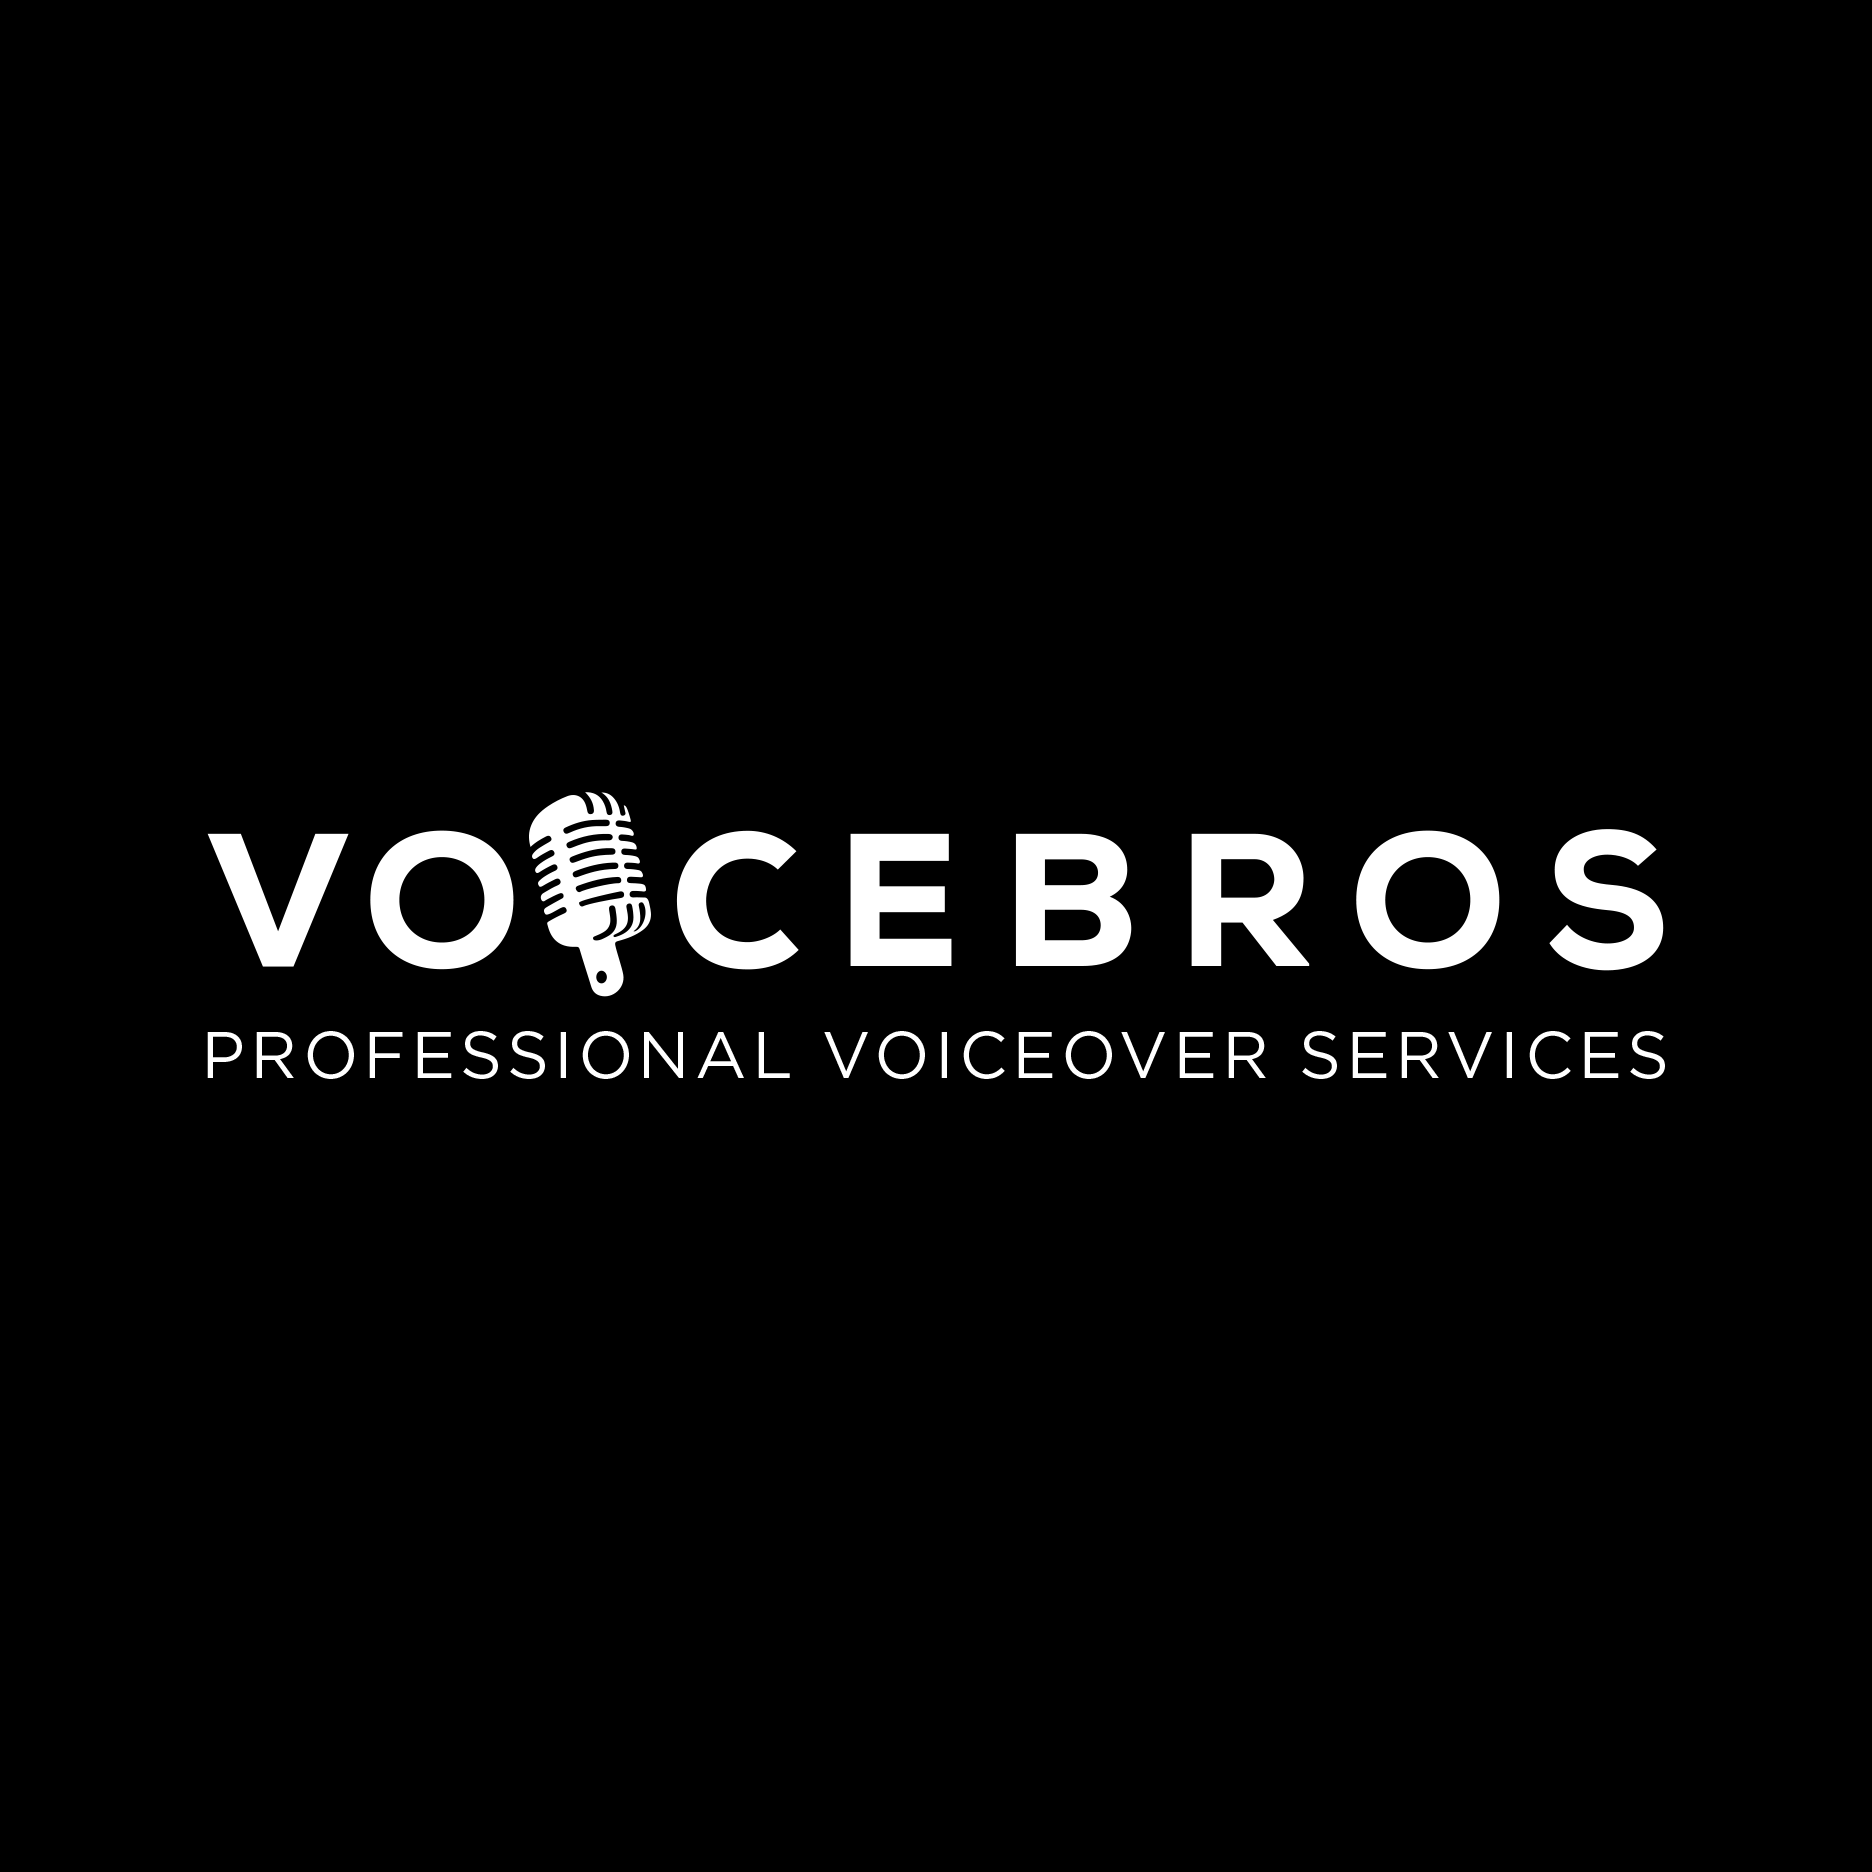 Ana Paula0 is a voice over actor